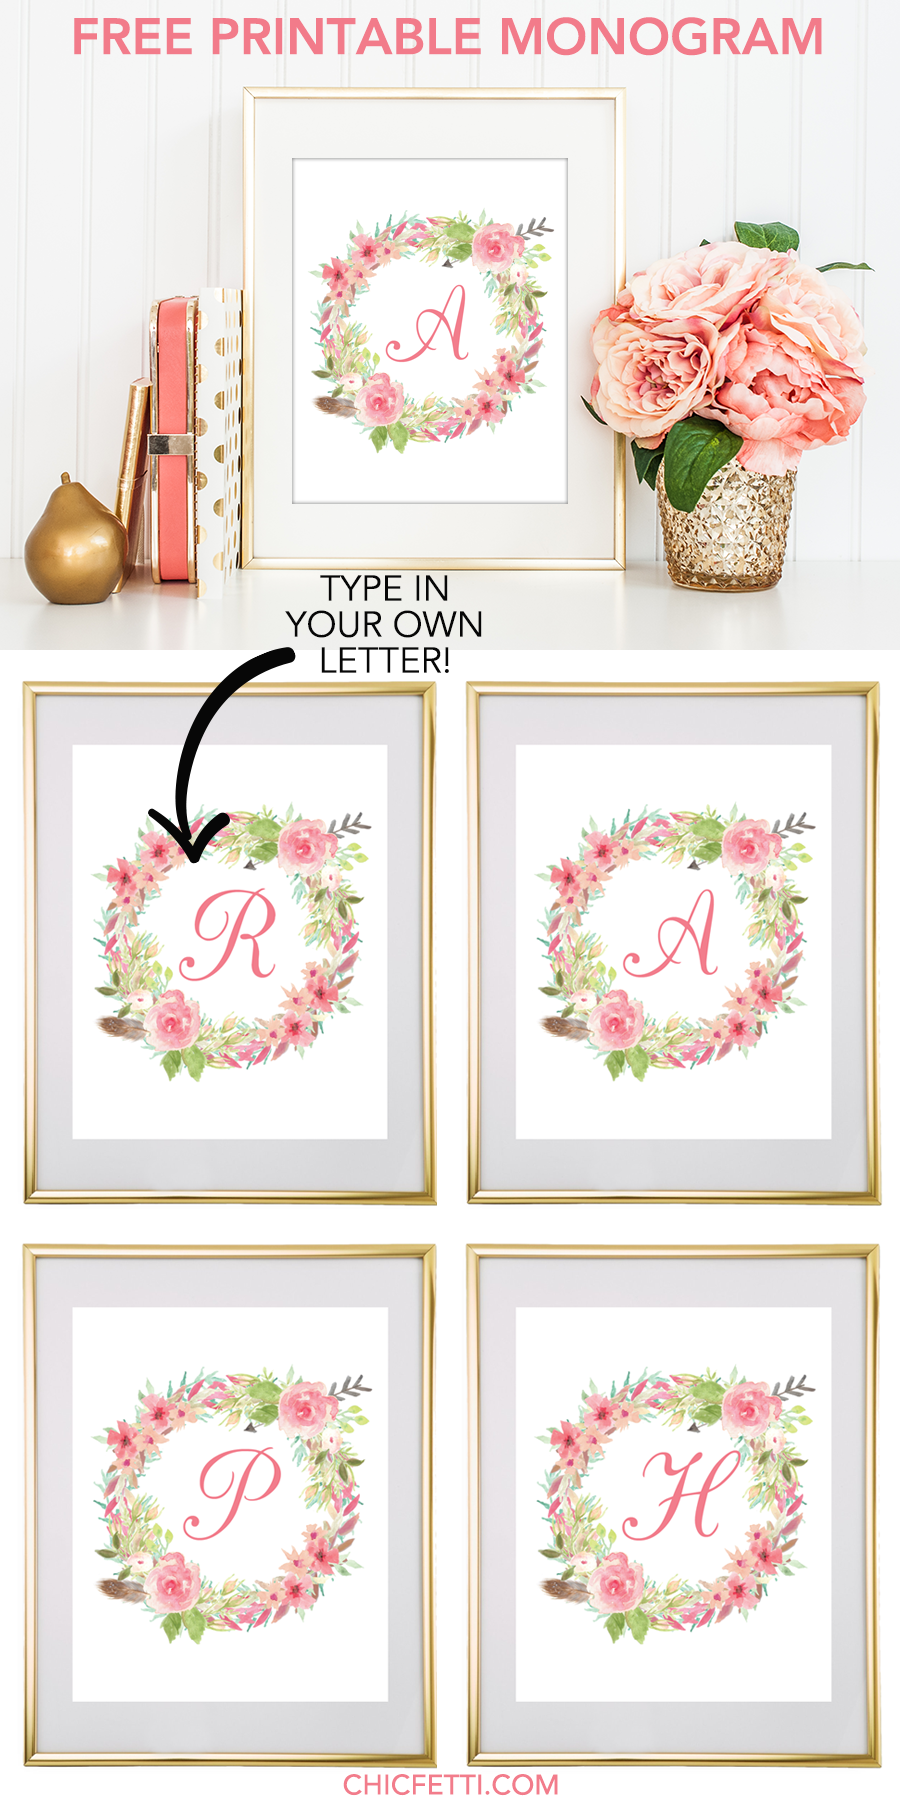 photo relating to Free Printable Monogram named Watercolor Floral Wreath Monogram Producer Free of charge Printable